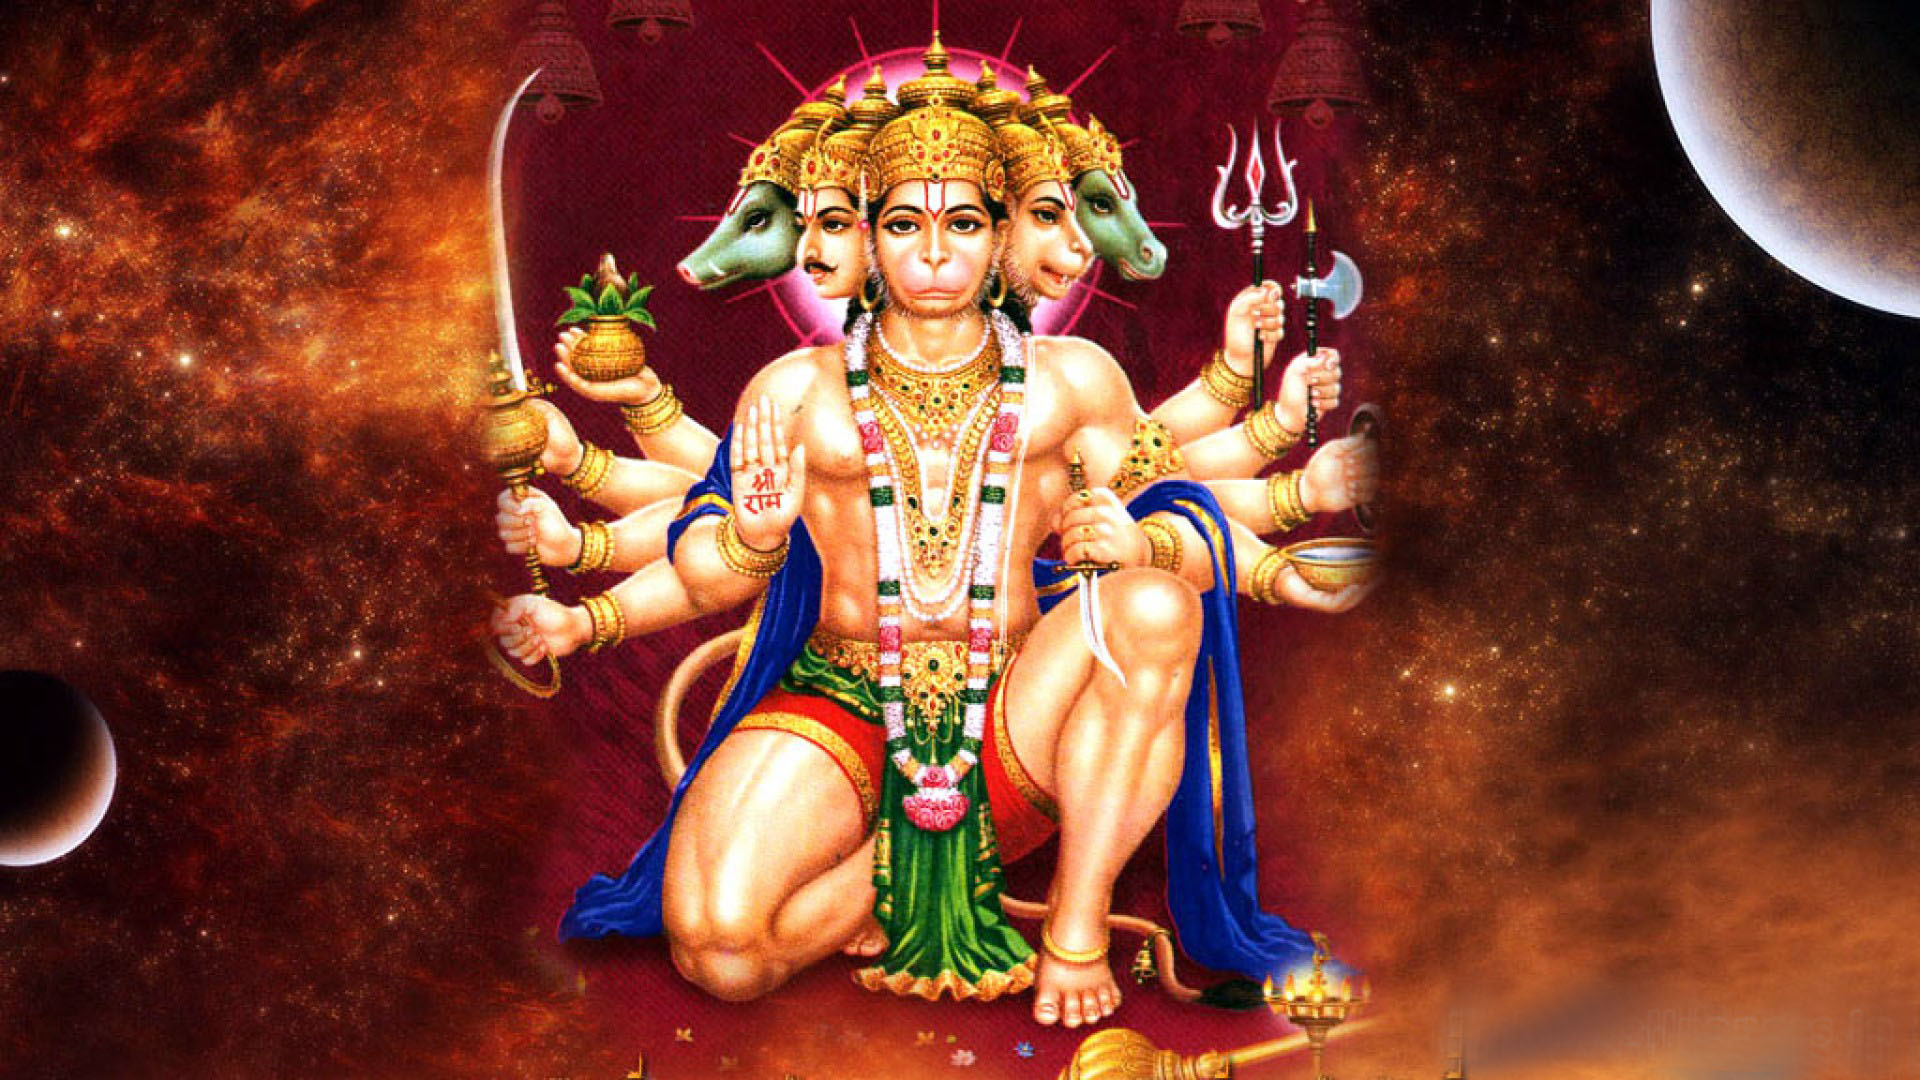 Lord Hanuman in his original face with there weapon